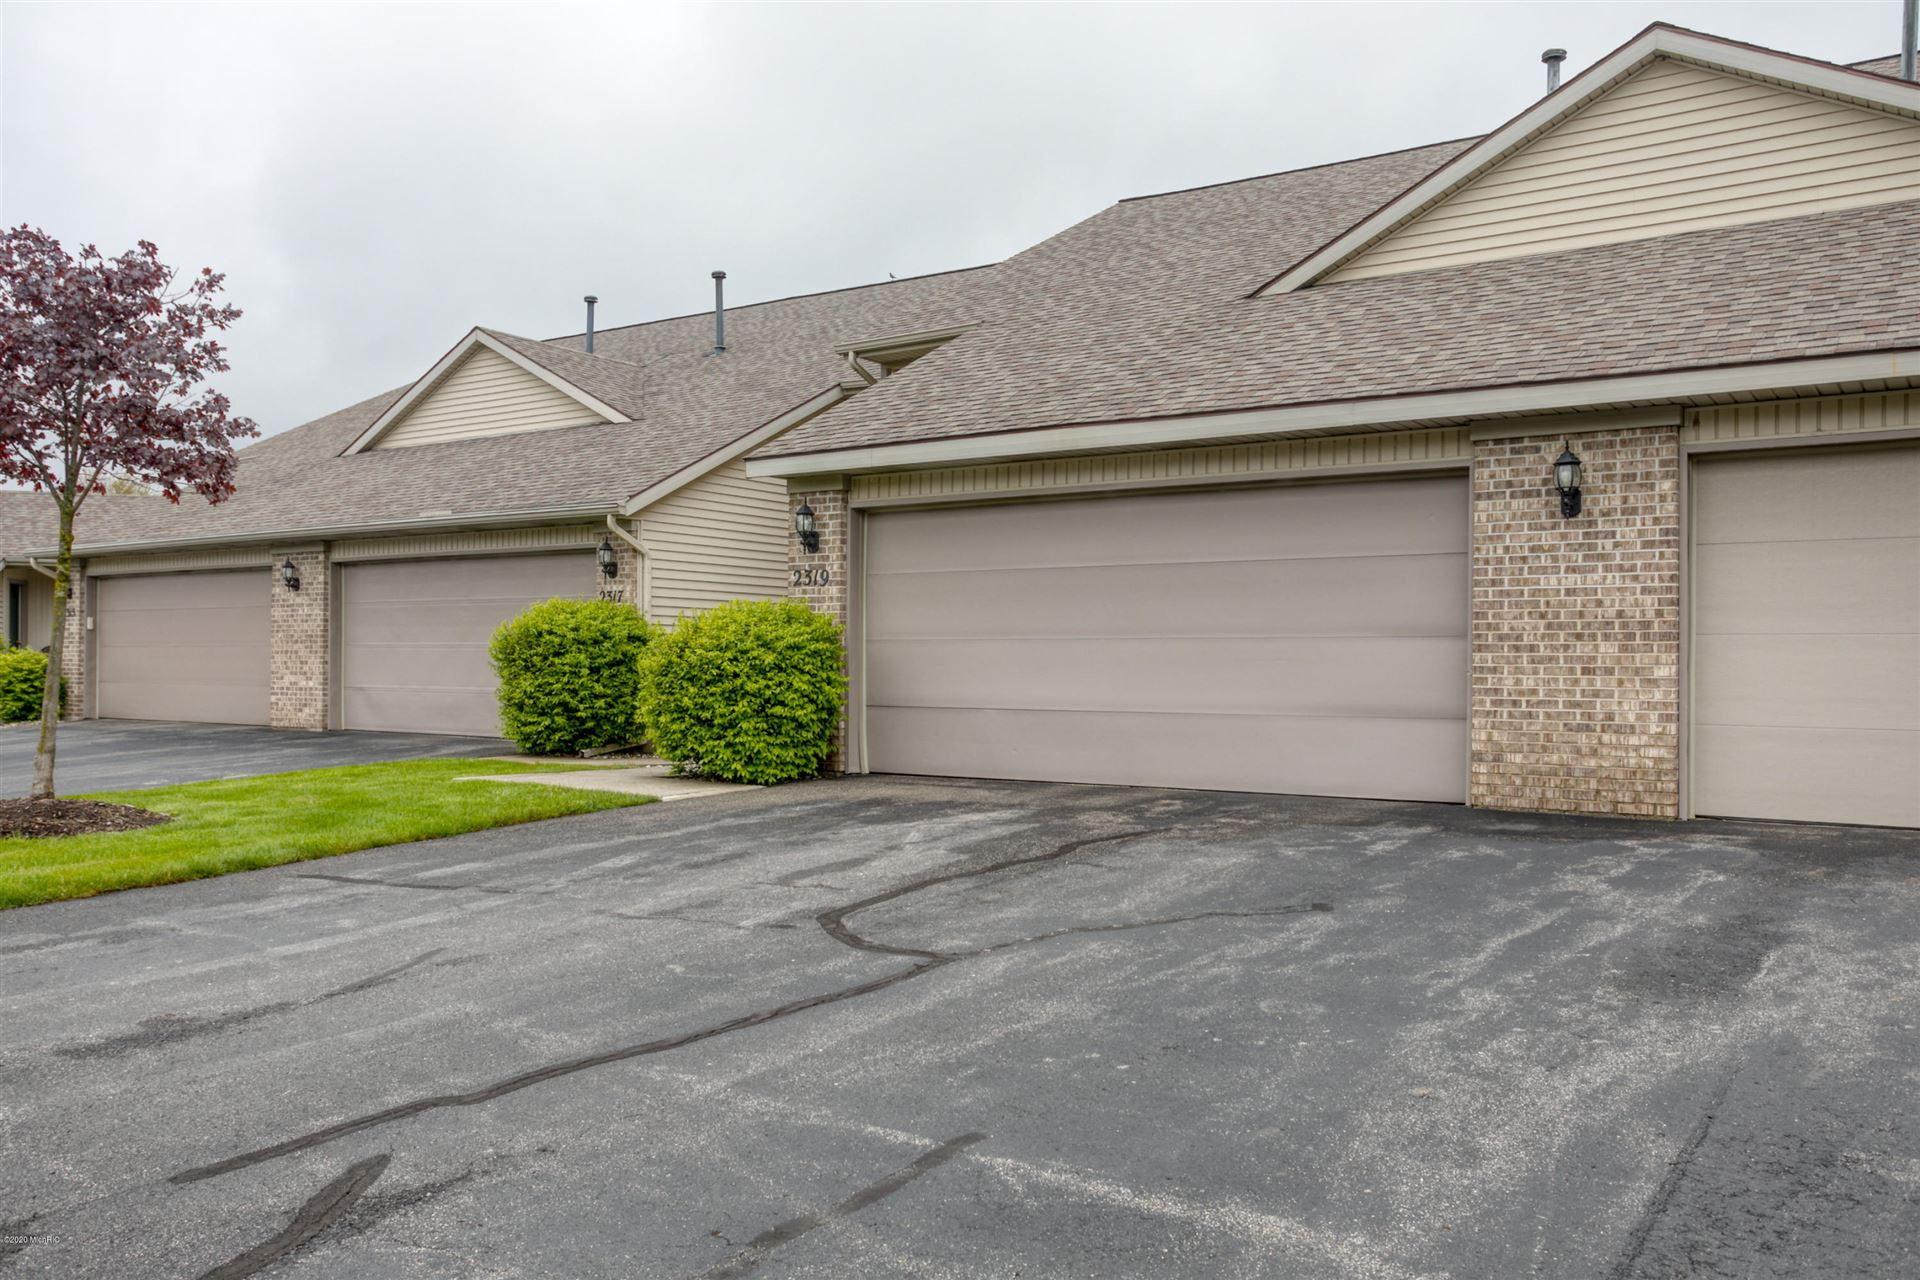 2319 S Highland View Circle SE #51, Grand Rapids, MI 49506 - #: 20017005